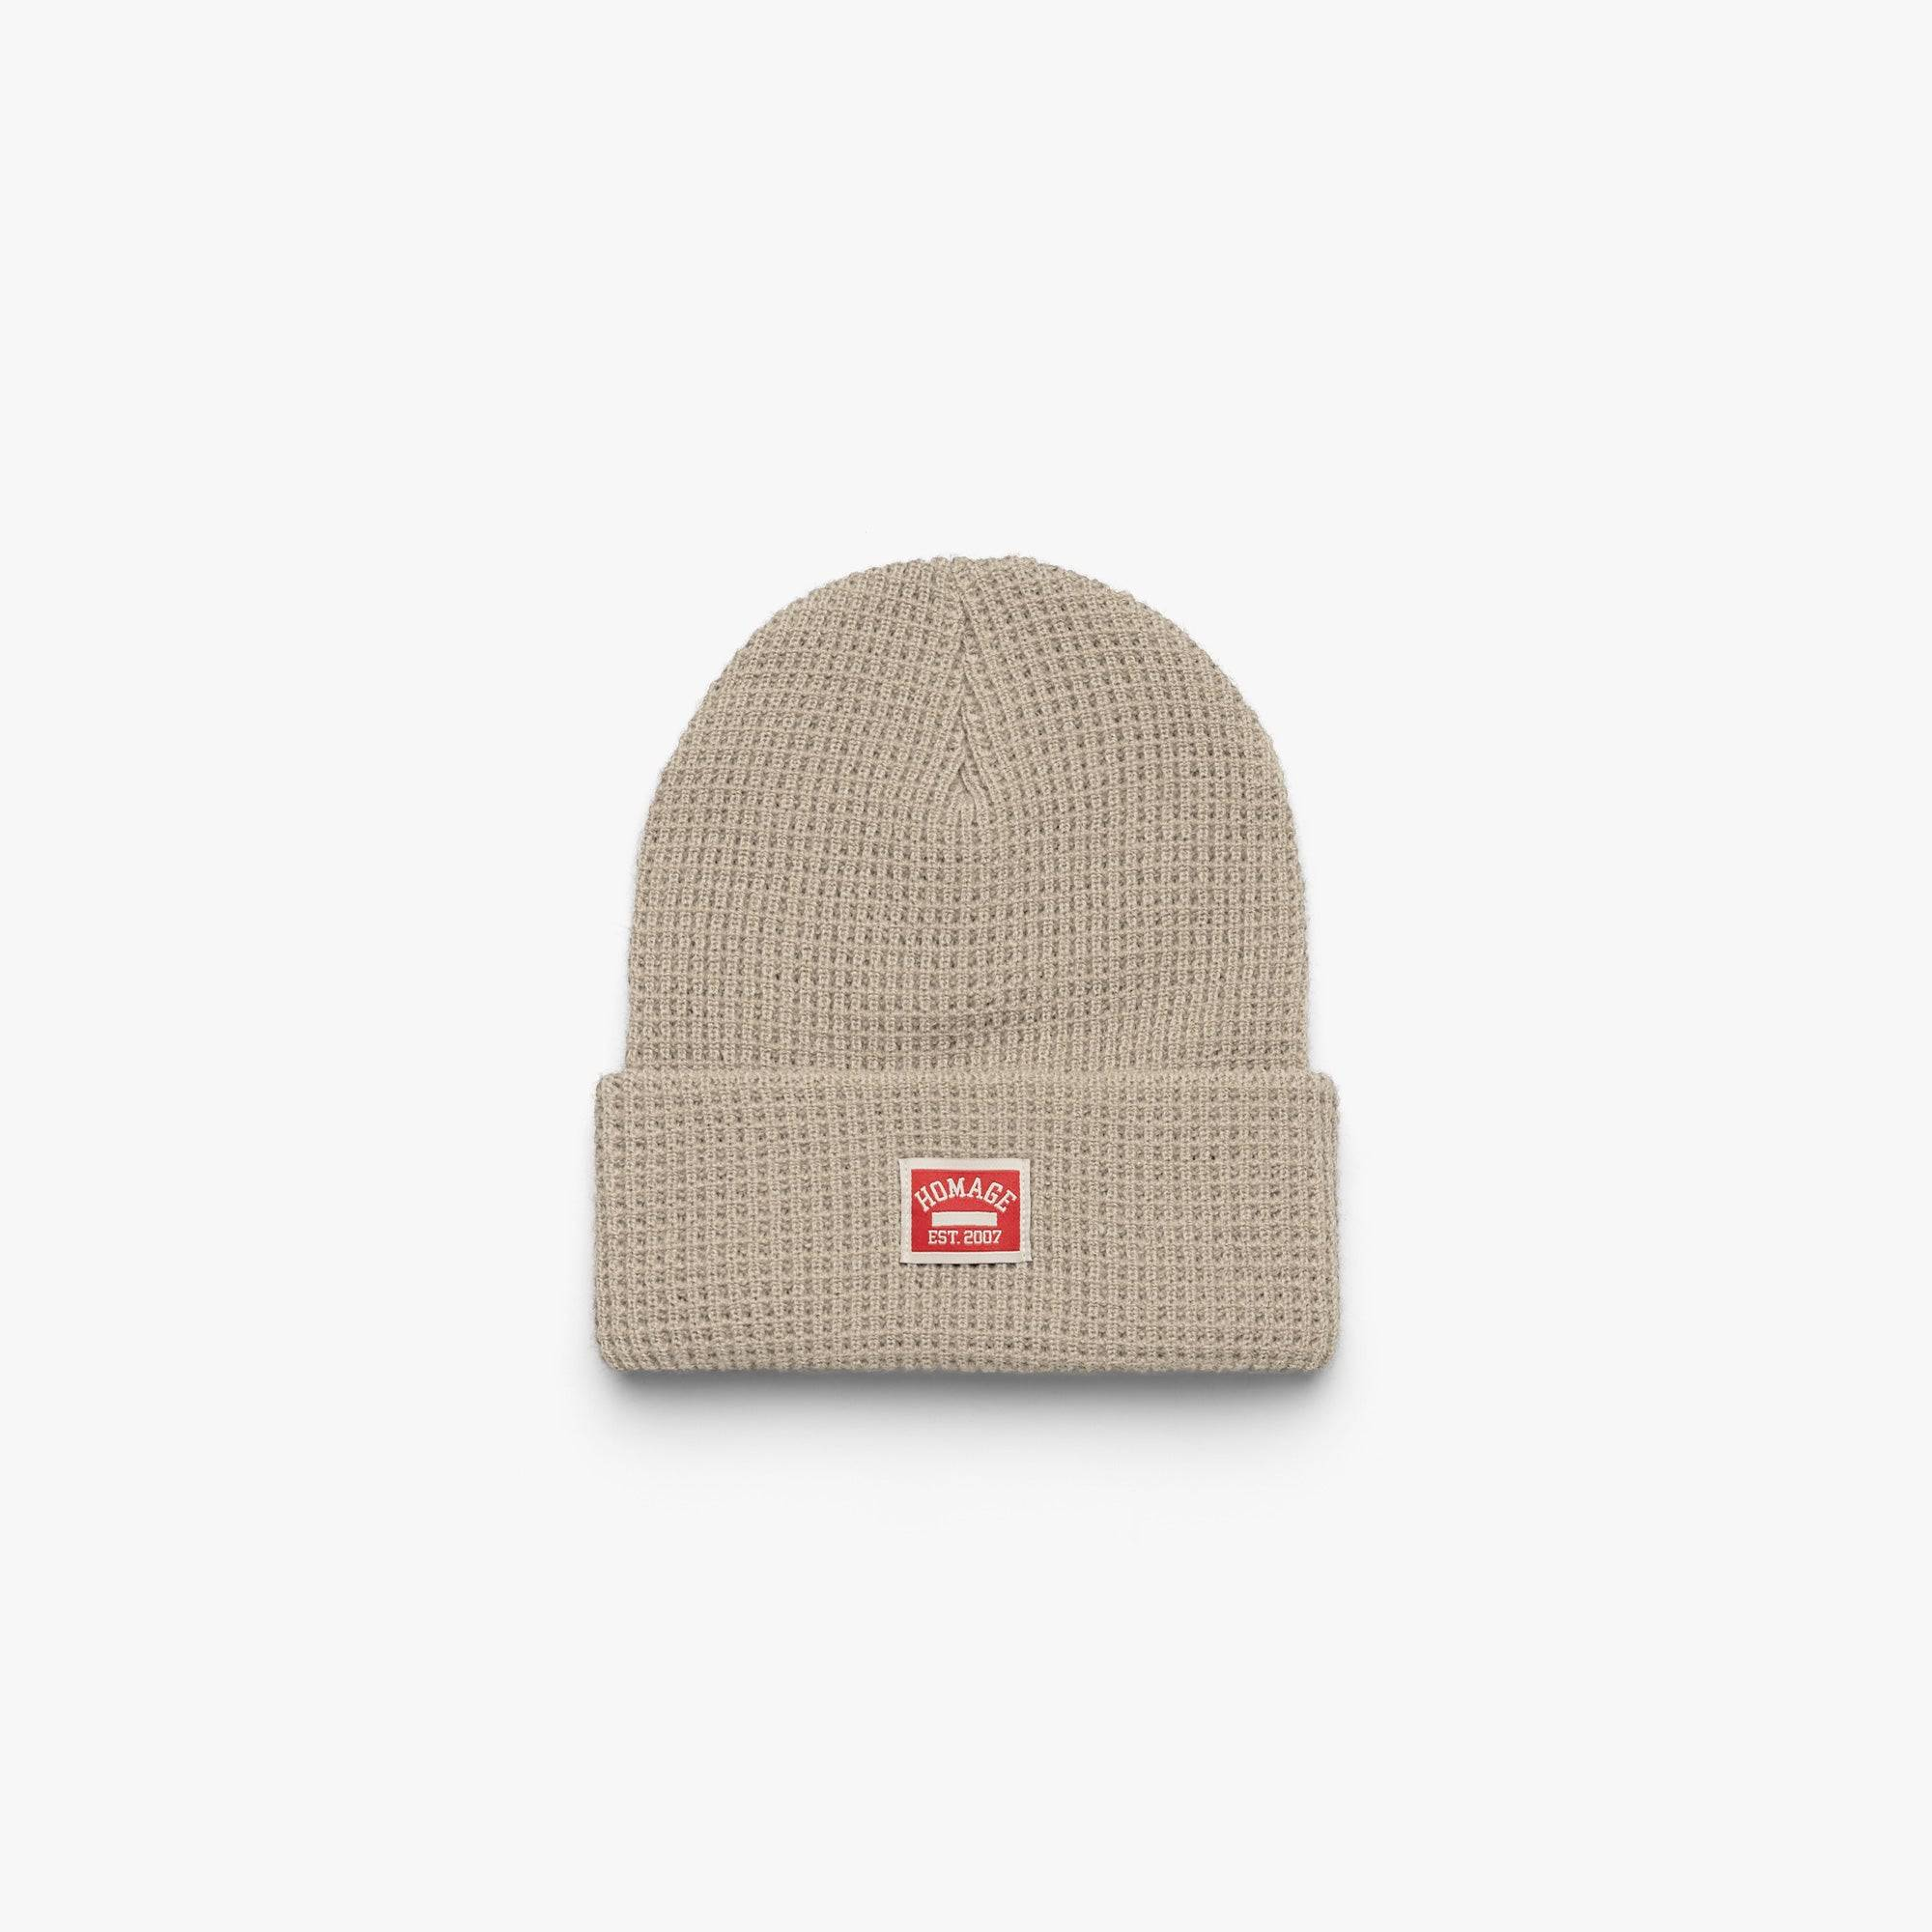 HOMAGE Go-To Beanie in  White/Black (Size: One Size)